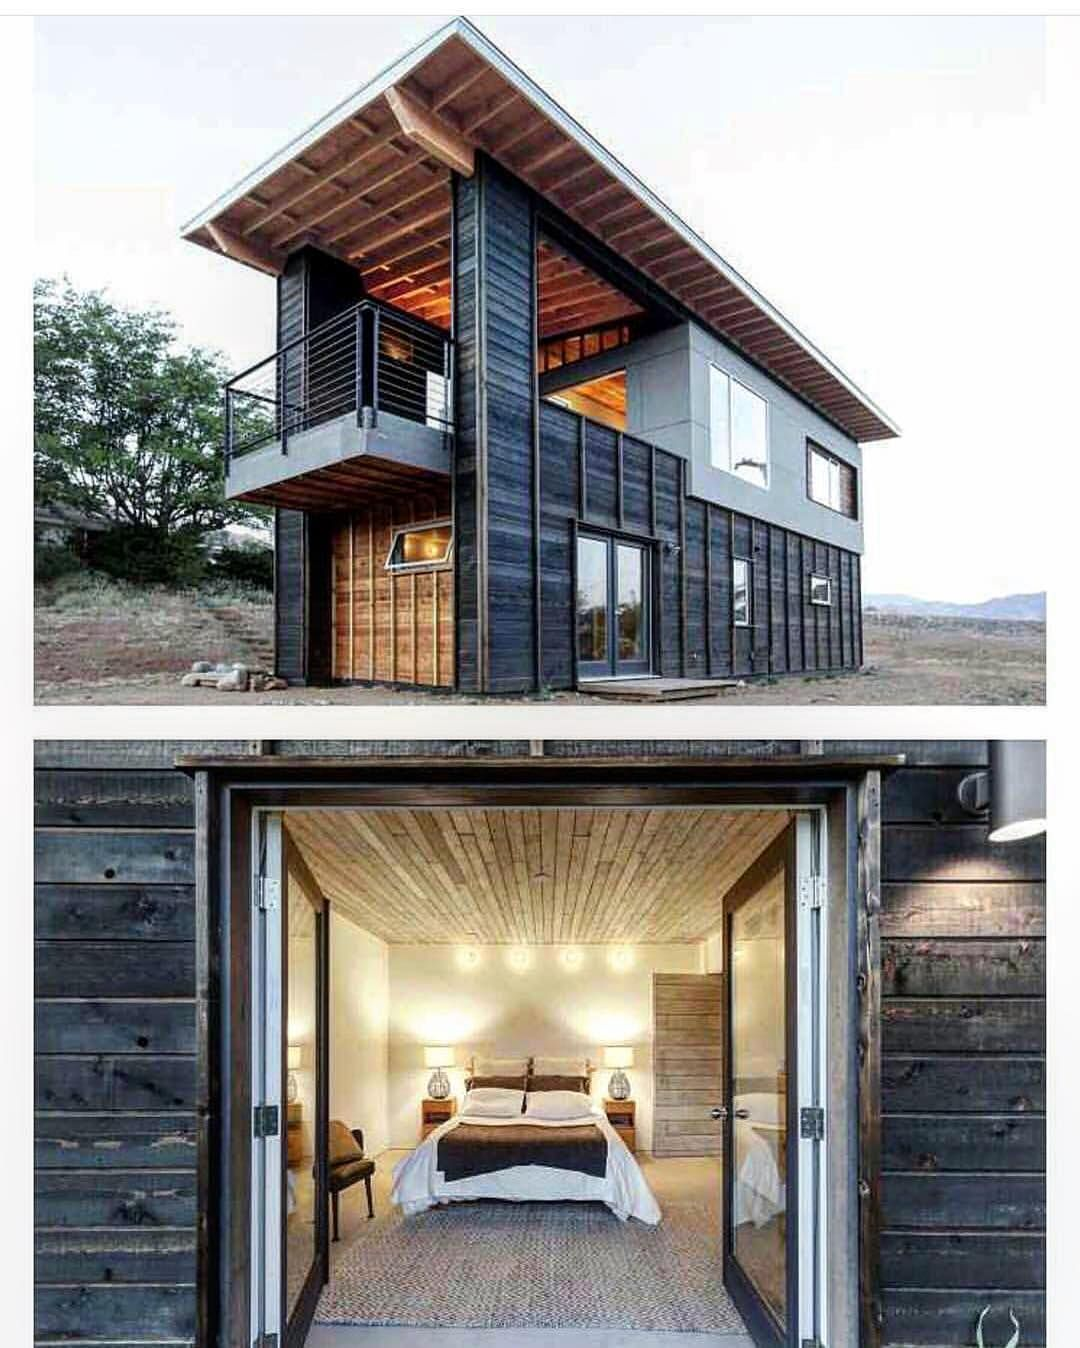 062g 0081 2 car garage apartment plan with modern style 2 car 422 likes 9 comments shipping container homes lifebox container on instagram